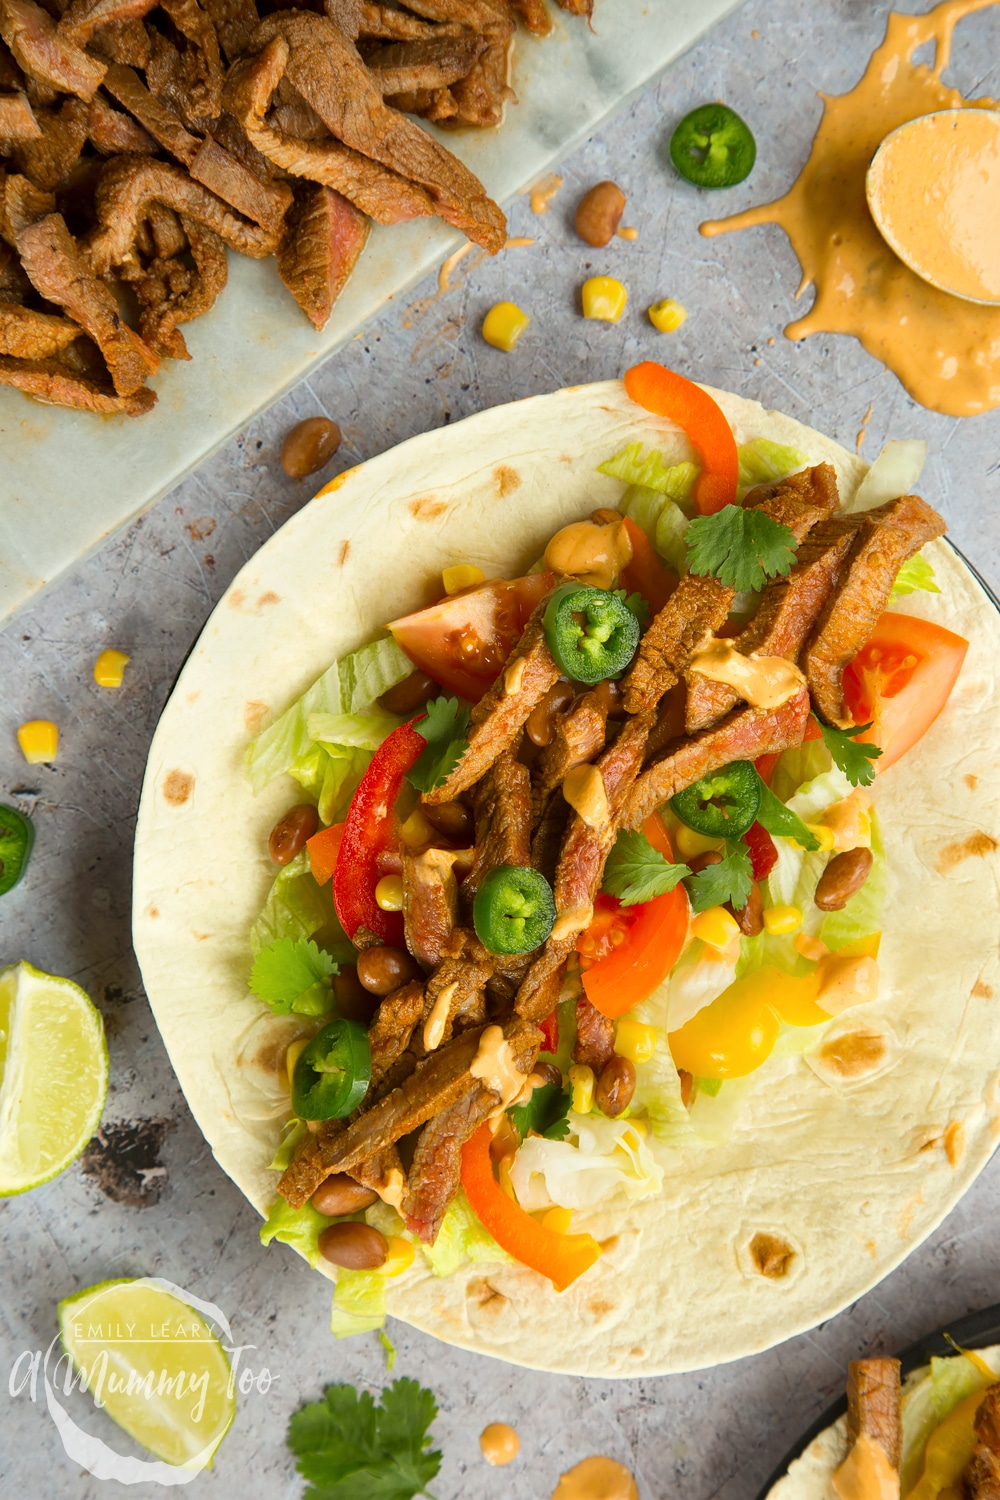 Spicy chipotle beef carne asada fajitas - this recipe will help you create amazing, tasty fajitas for the whole family!